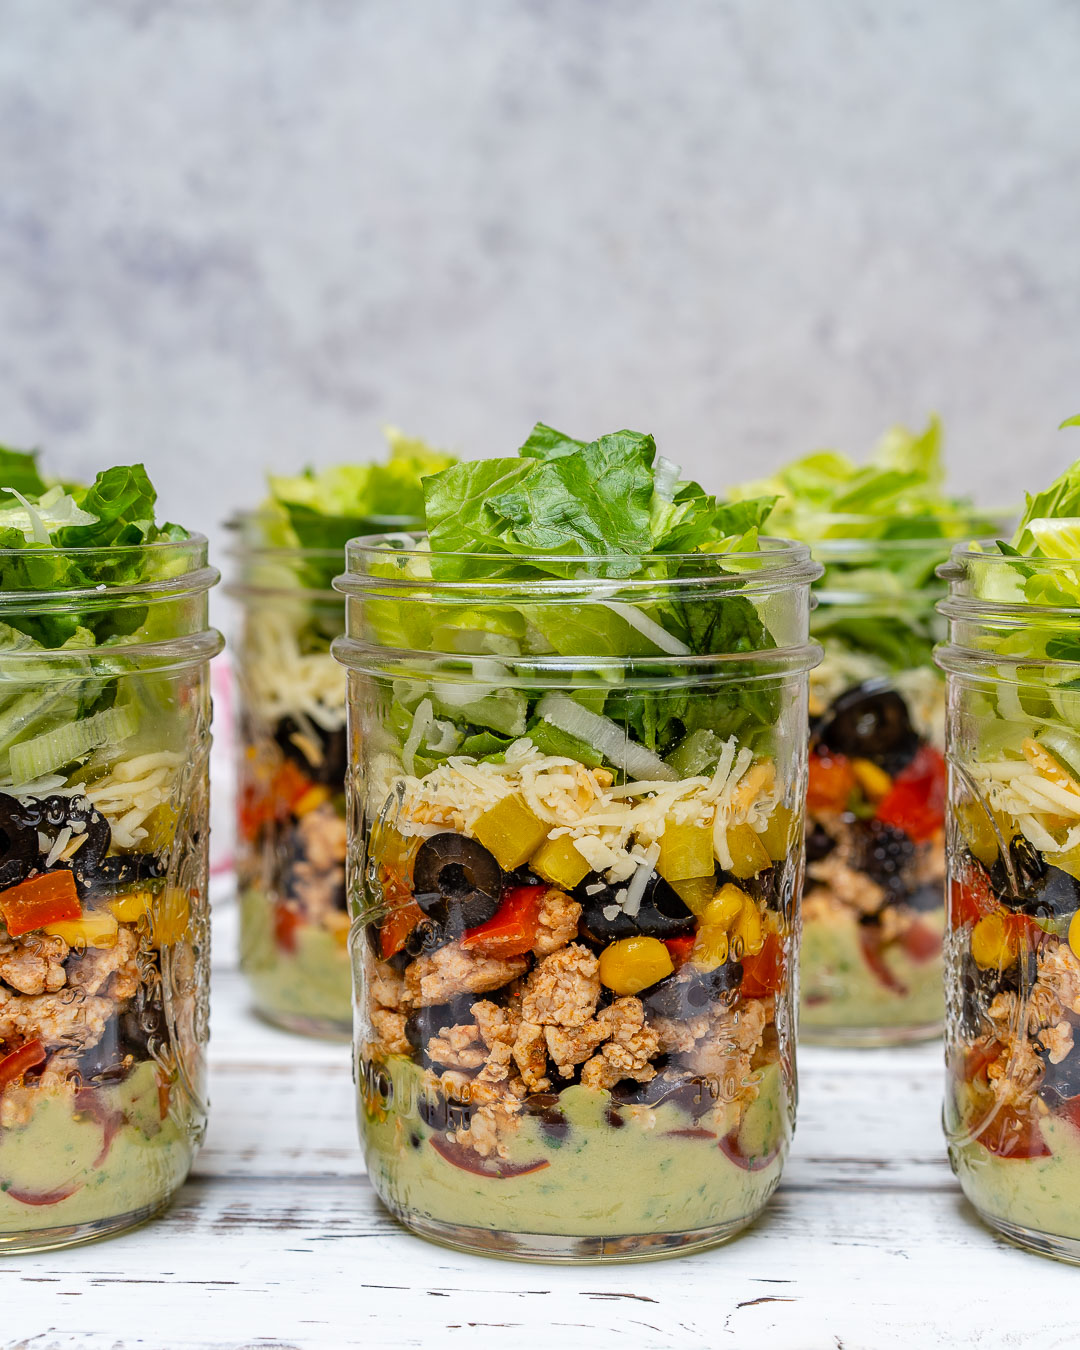 Eat Clean Fiesta Taco Salad-in-a-jar ingredients